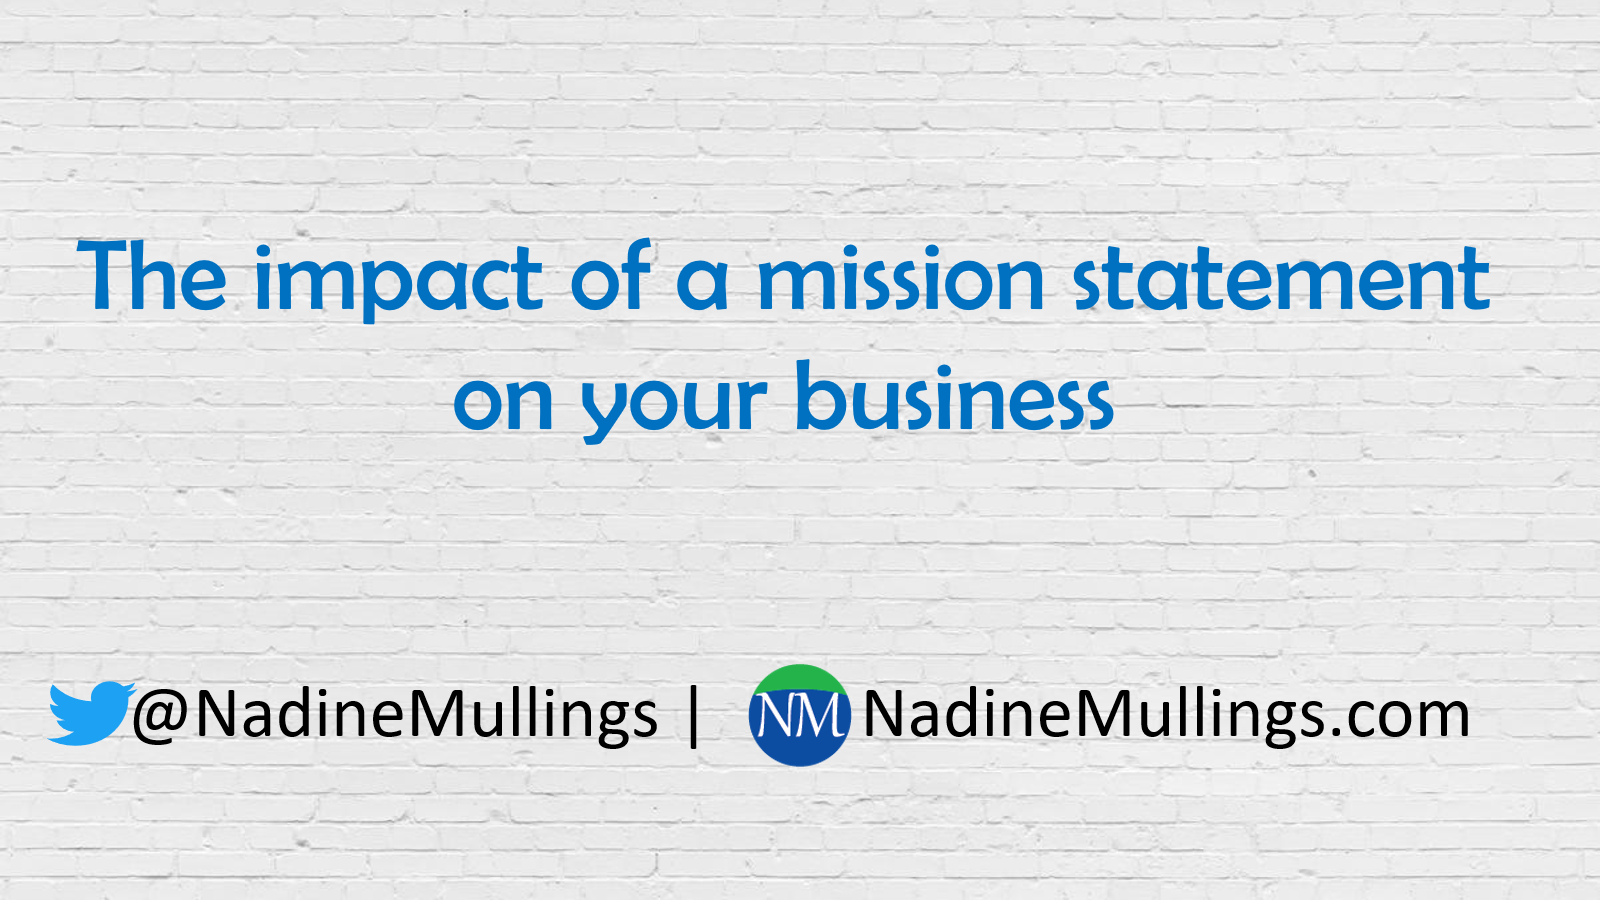 The impact of a mission statement on your business